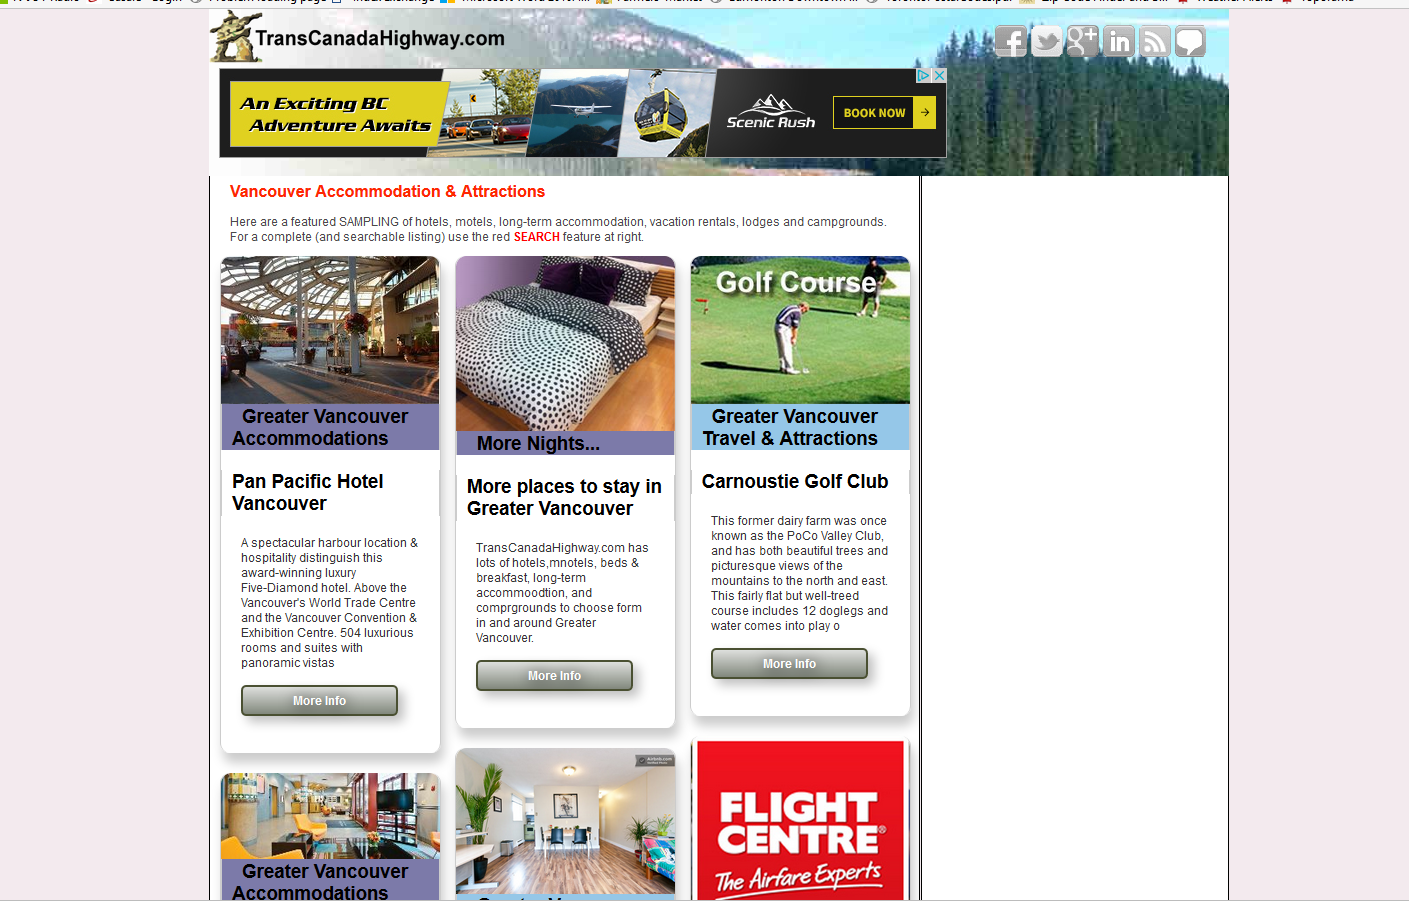 Enhanced City Pages On MovingInCanada.com And TransCanadaHighway.com